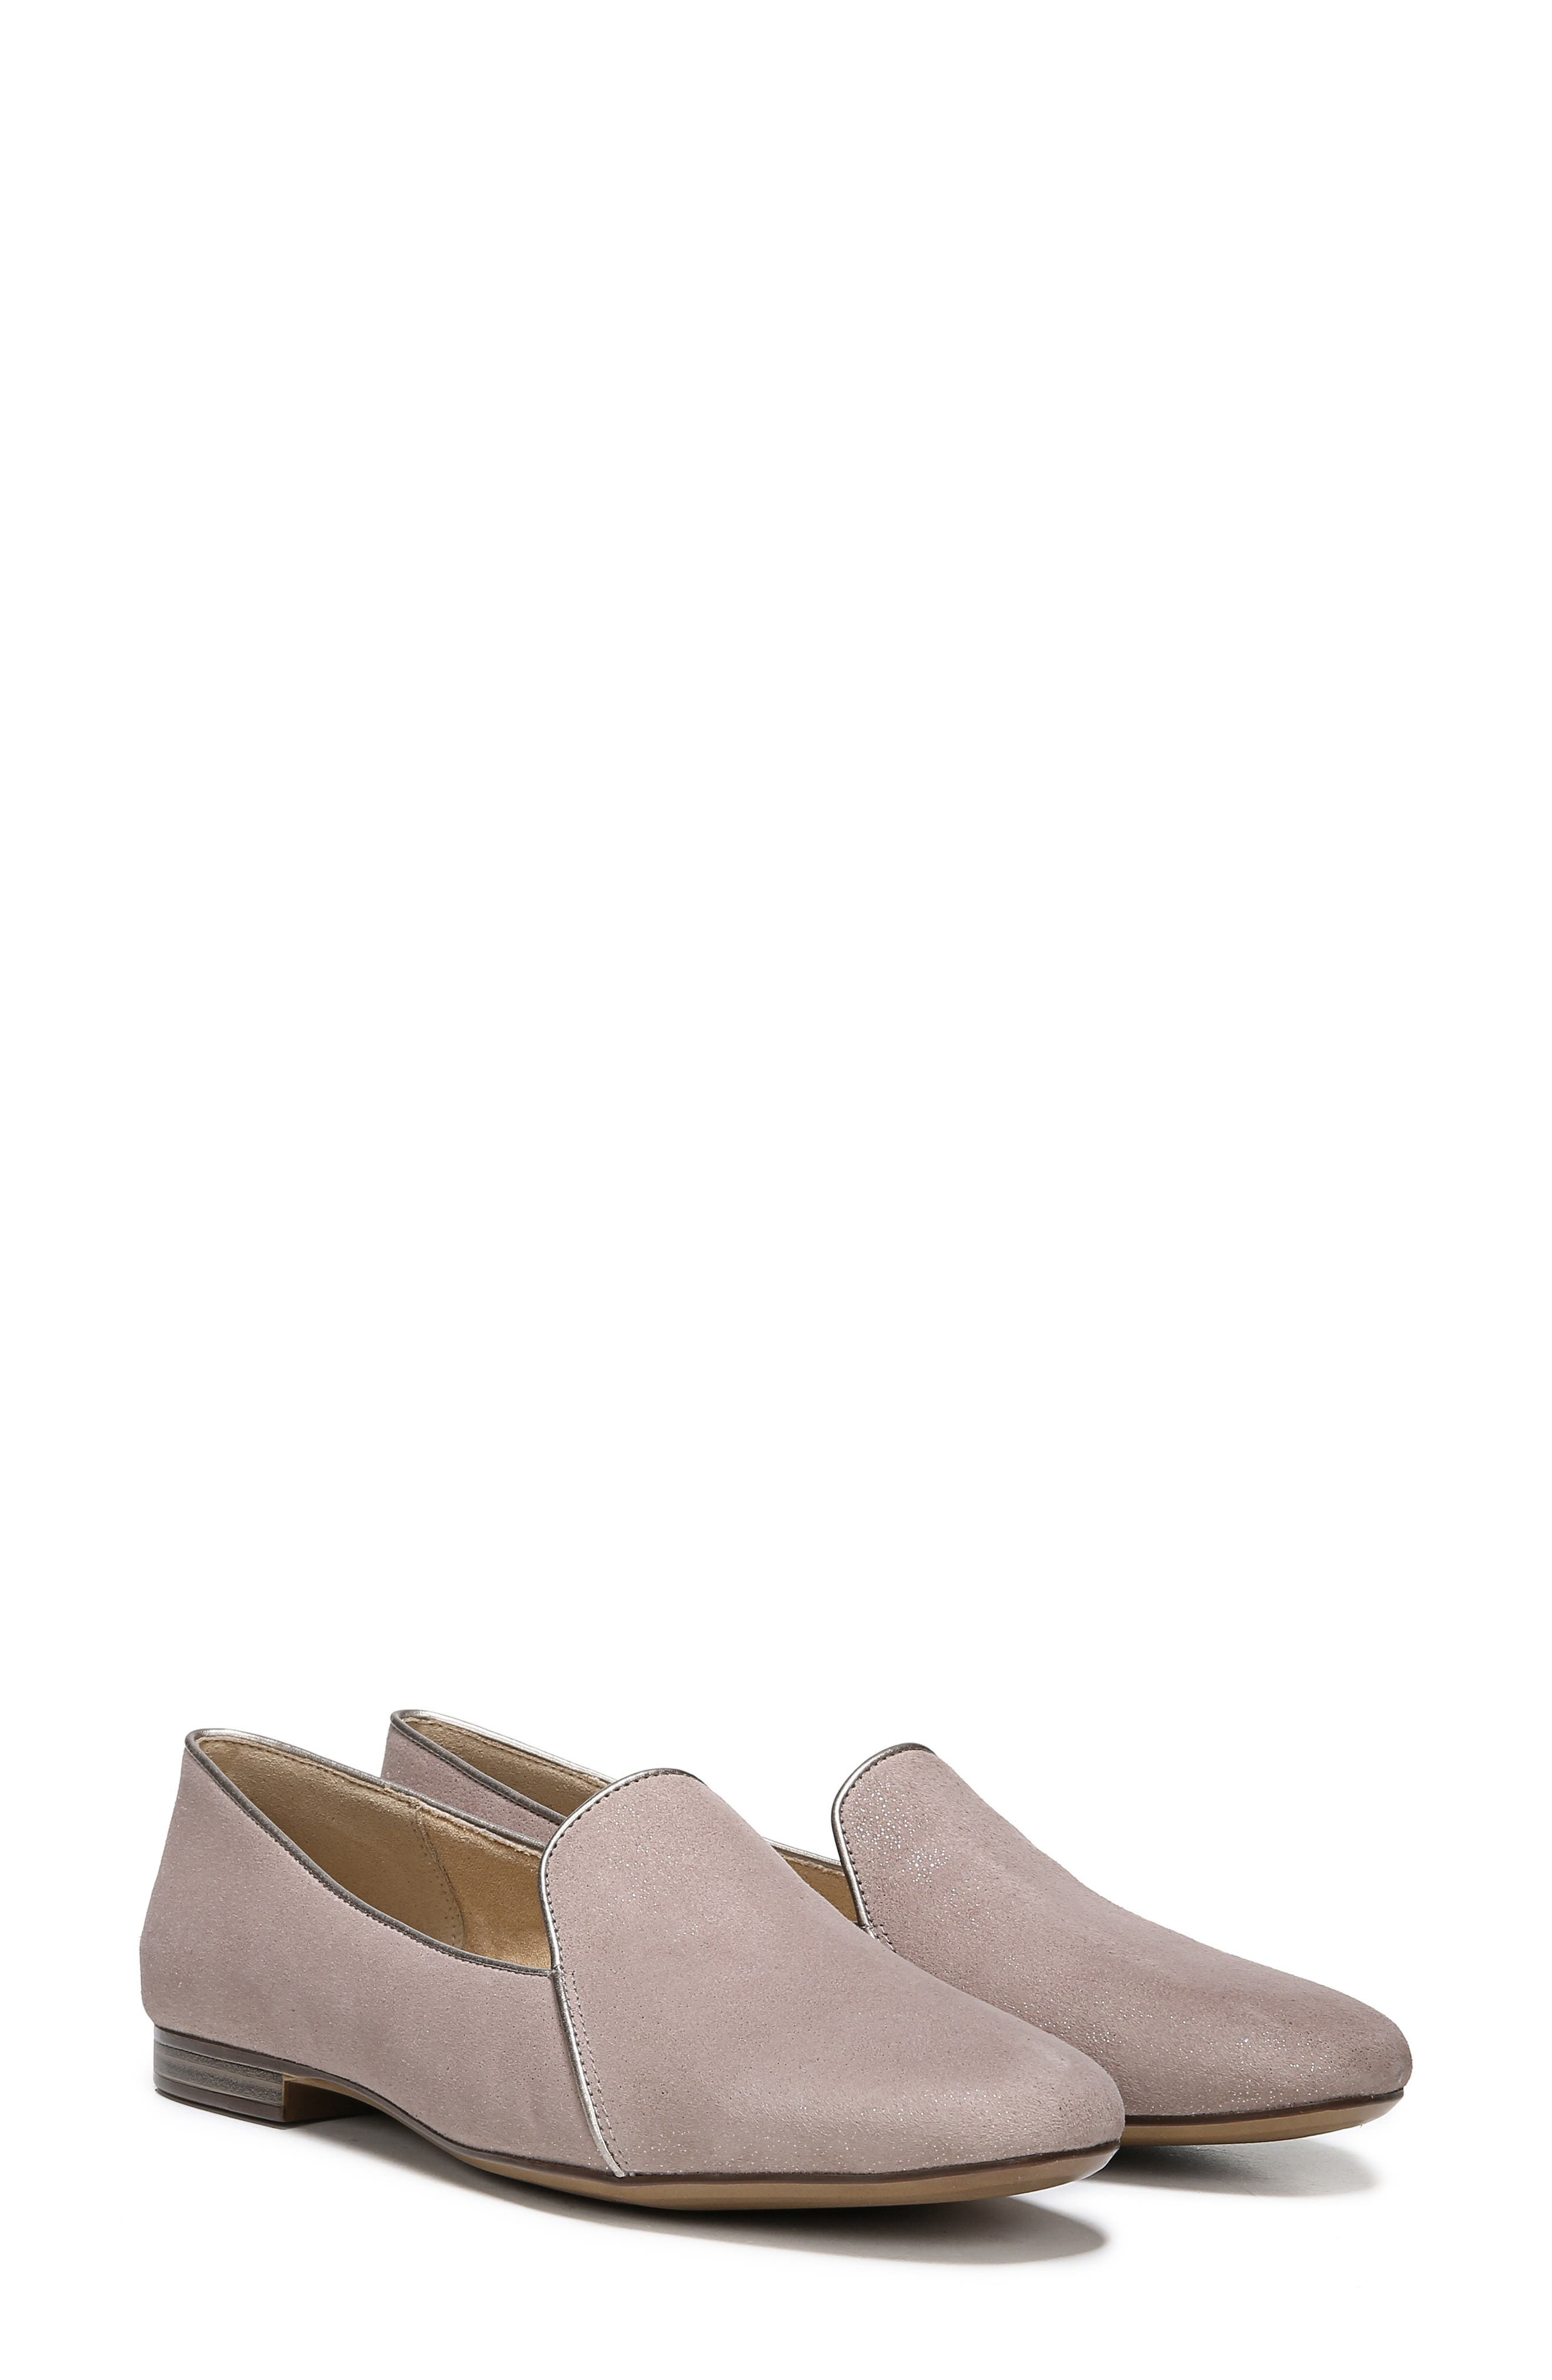 Emiline 2 Loafer,                             Alternate thumbnail 9, color,                             TAUPE GLITTER DUST SUEDE